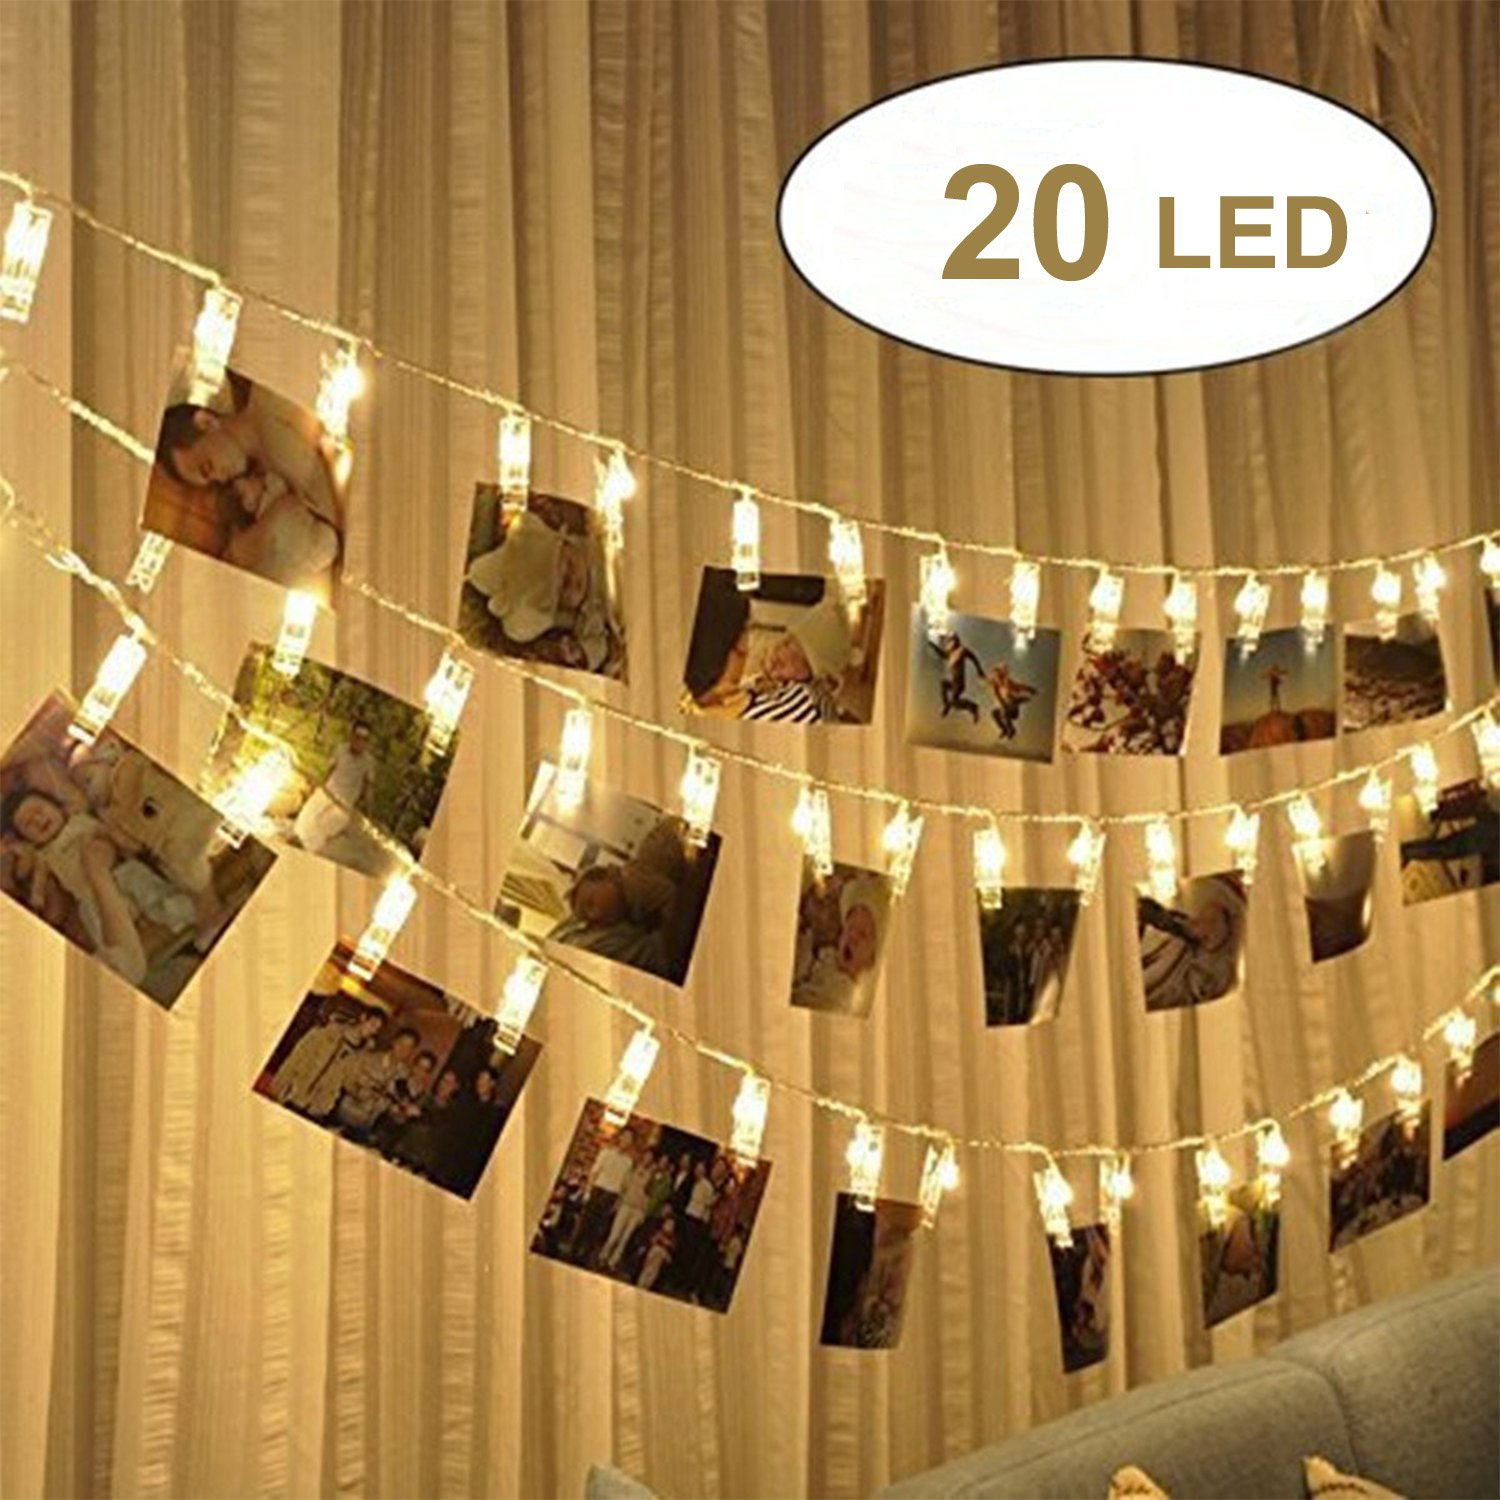 20 LED Photo Clip Lights,2.4m Battery Powered fairy String Lights with photo clips, Picture Lights for Hanging Photos Pictures Cards, Memos, Artwork, Ideal Gift for Dorms Bedroom Decoration (Warm White) frdzsw